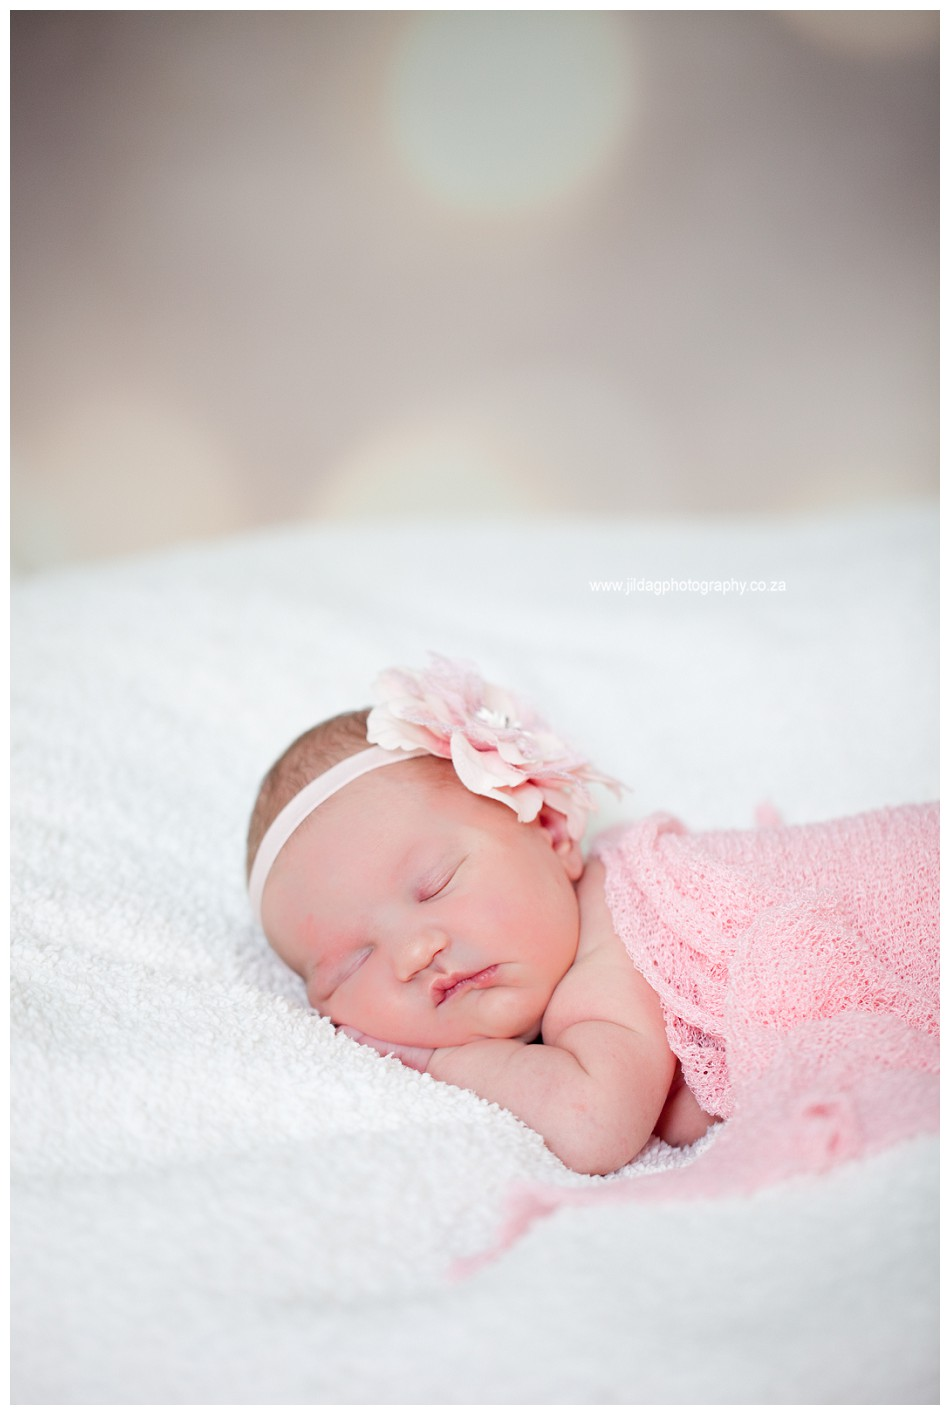 Jilda-G-Photography_newborn-Photography (7)